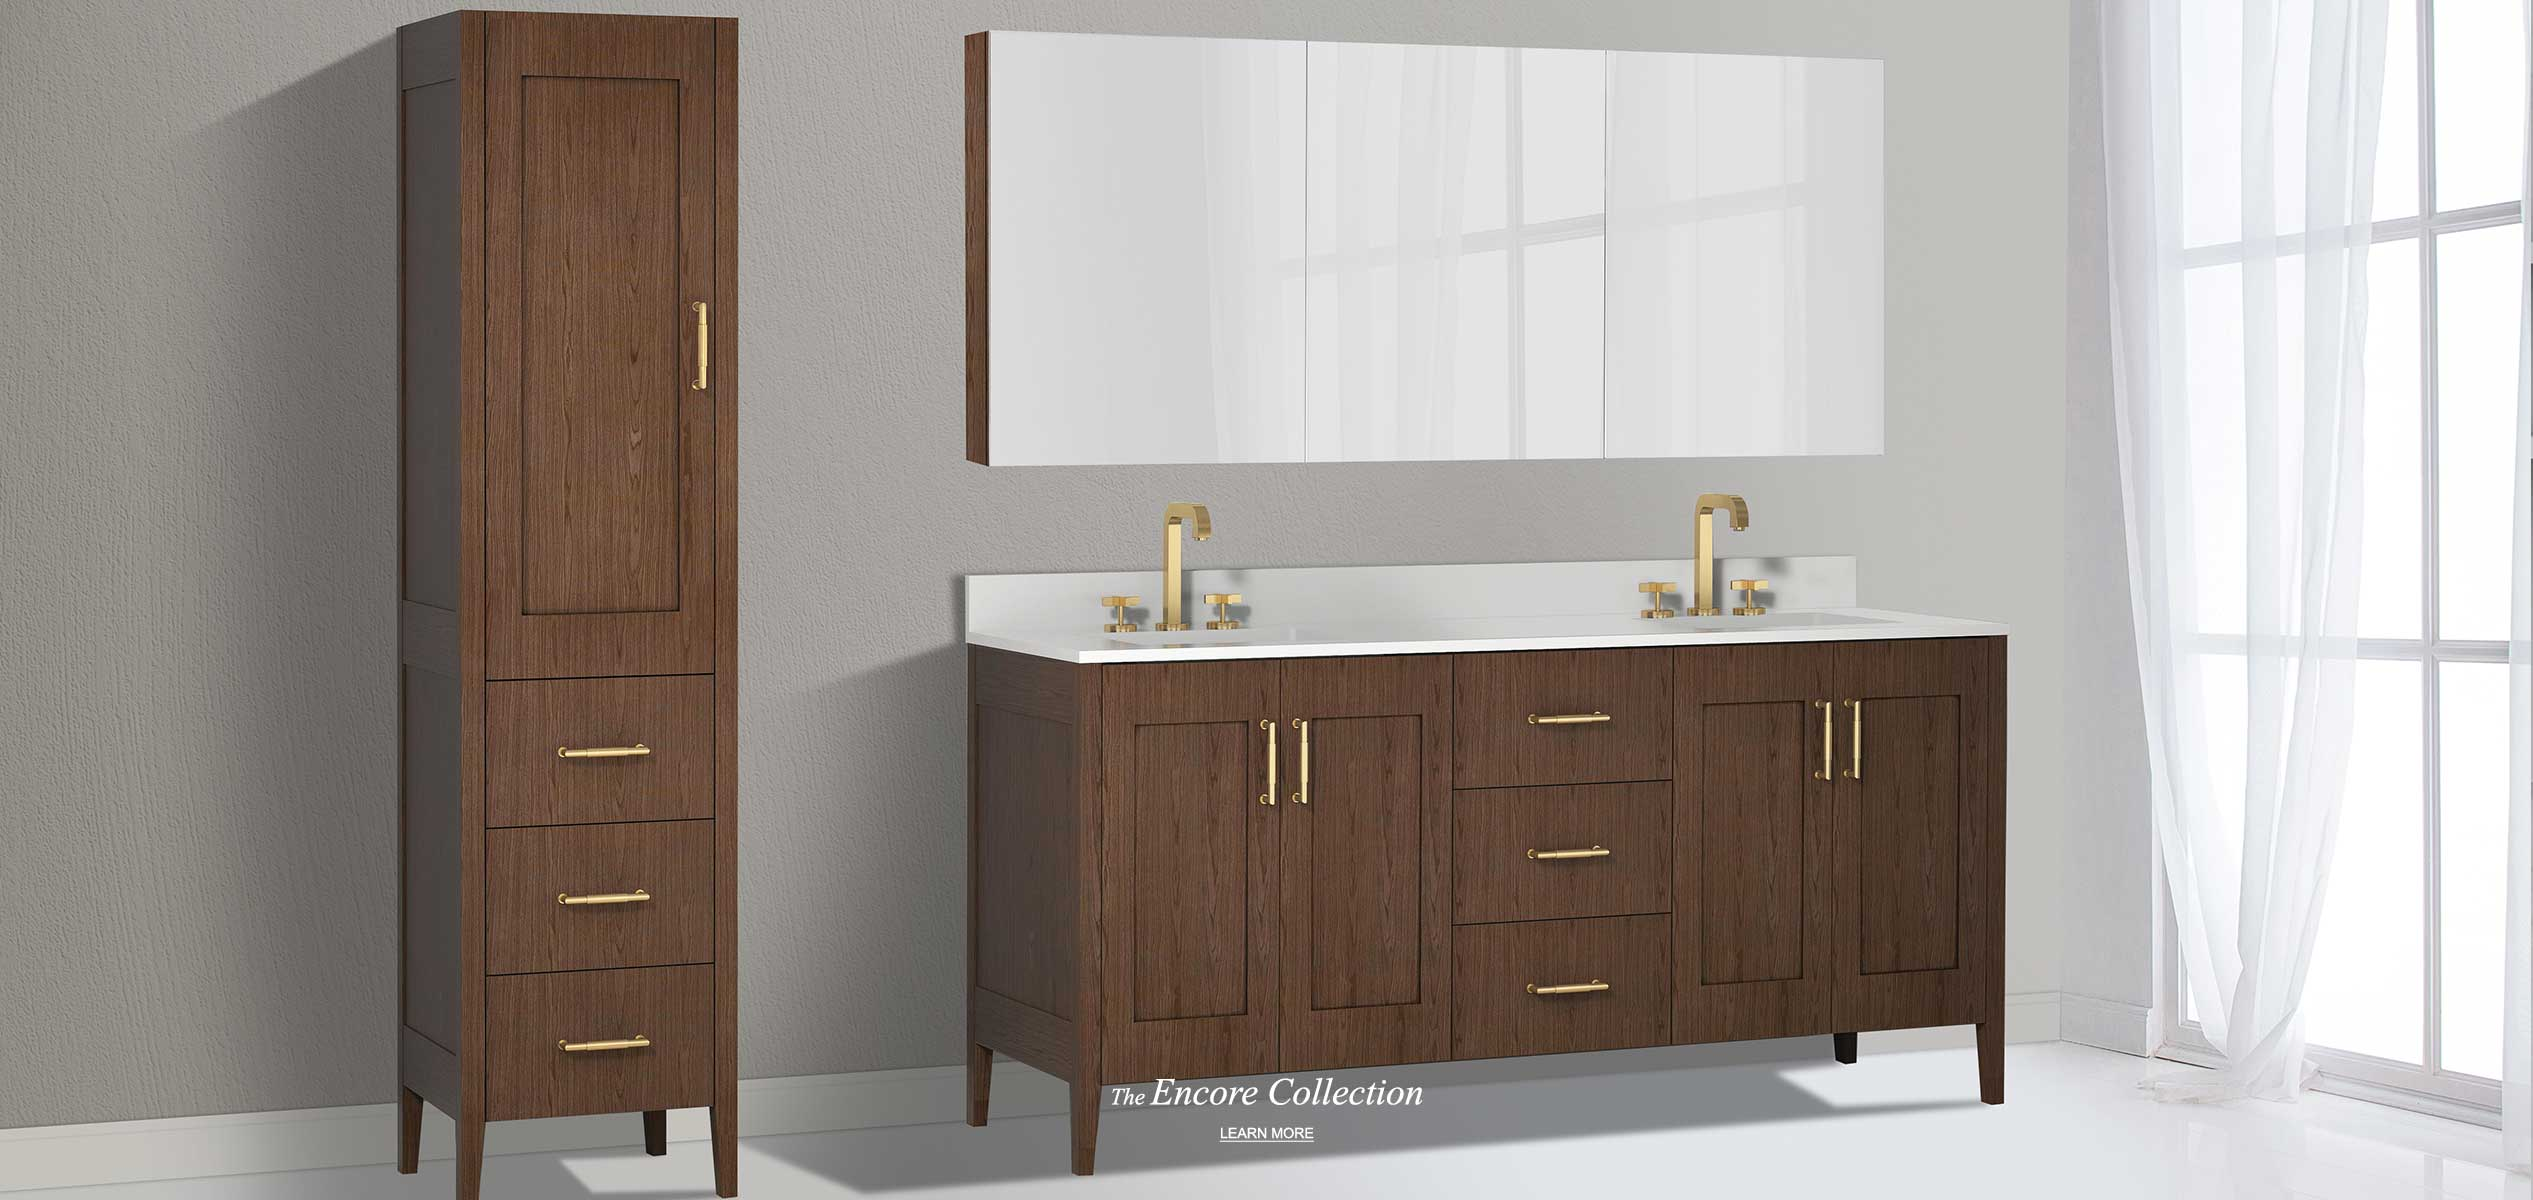 Encore 72 inch double bowl vanity and linen cabinet in walnut color and medicine cabinet